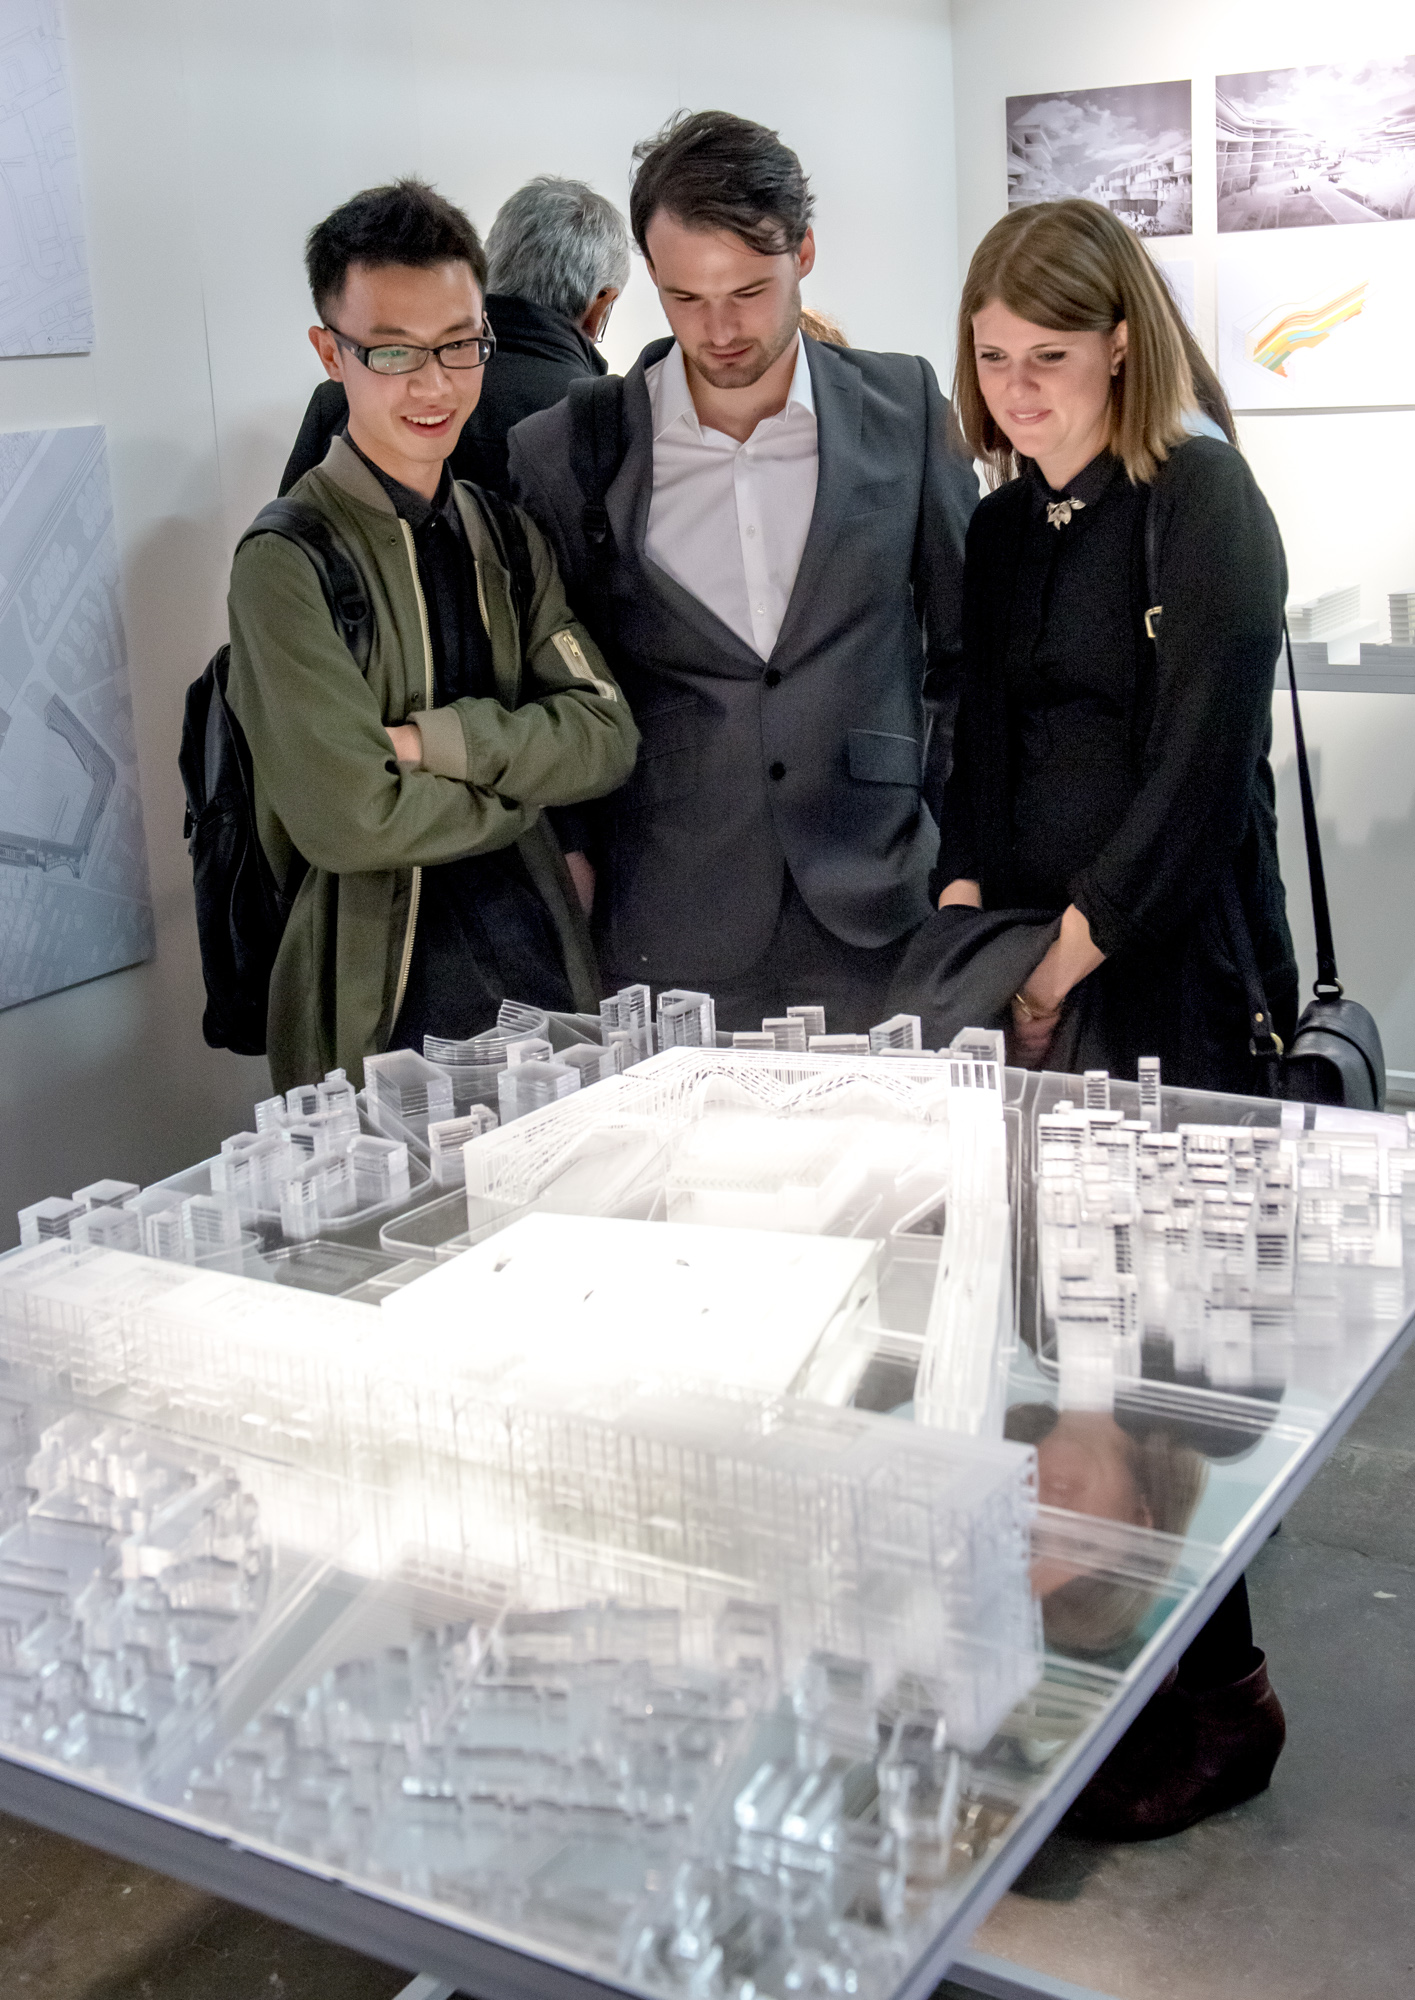 2015 B-Pro Exhibition. Bartlett School of Architecture, UCL, 140,Hampstead Road, London.Photographs by Richard Stonehouse. Architectural and interior photography